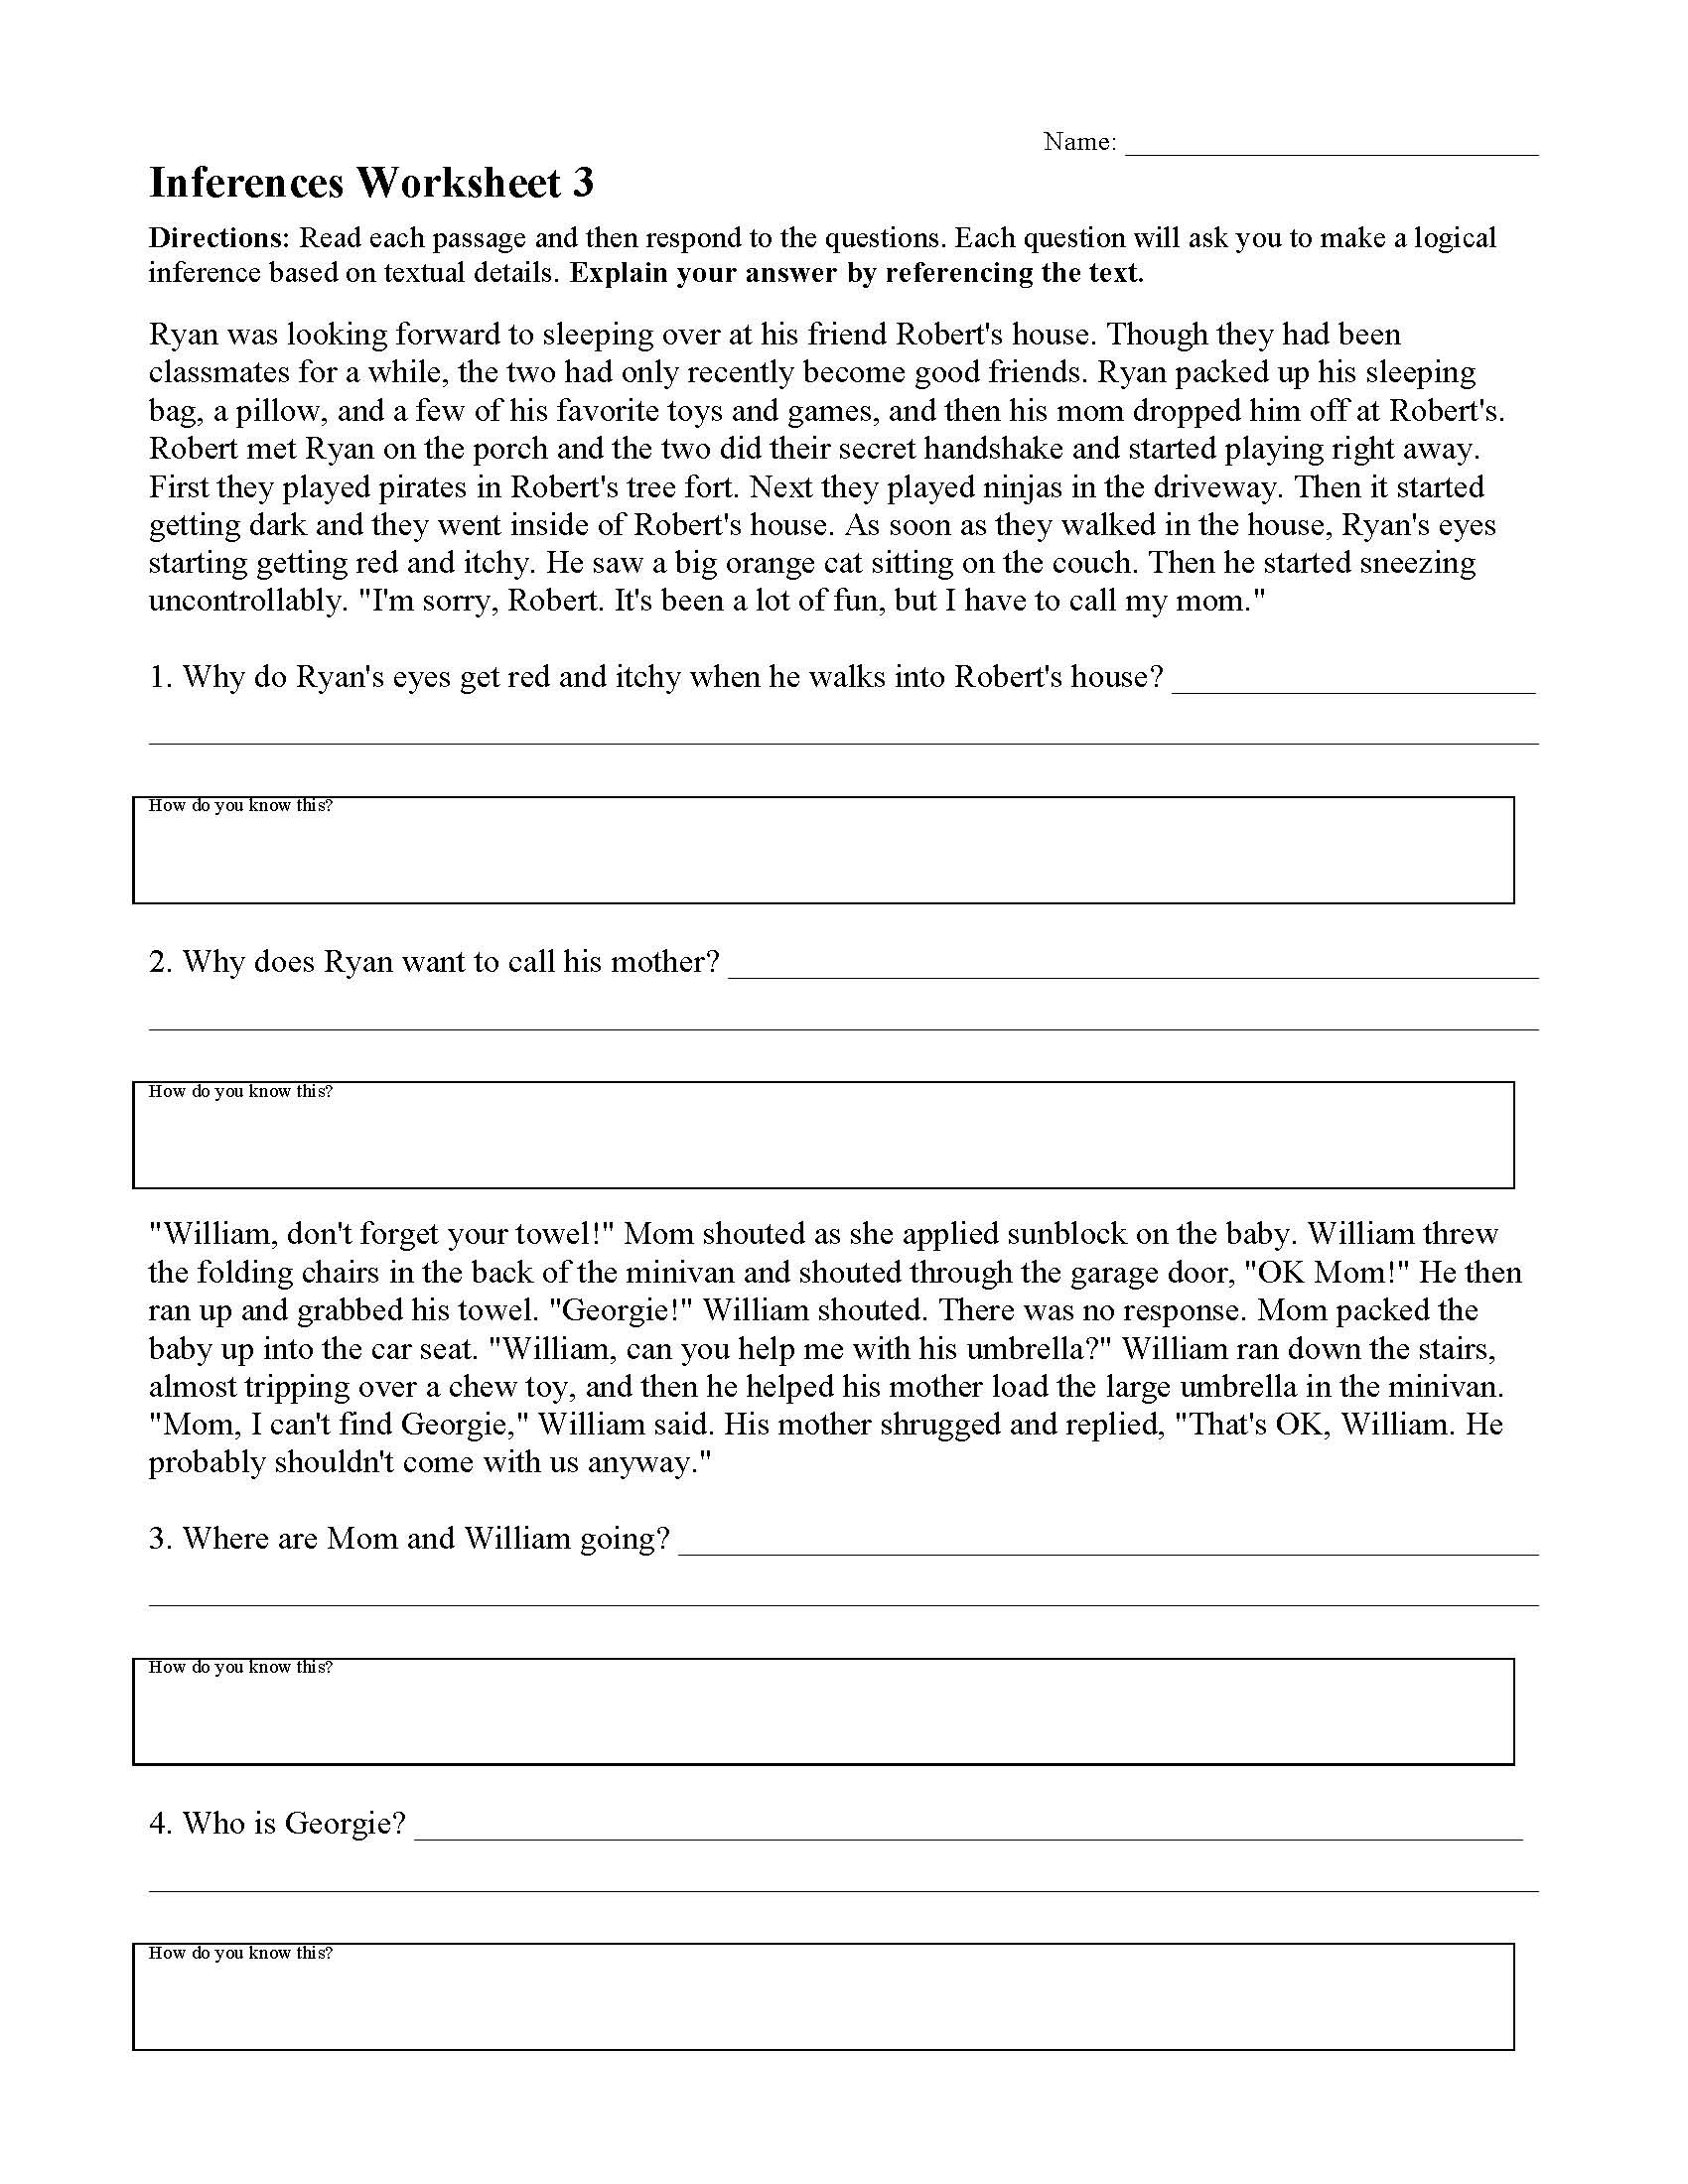 Inferencing Worksheets Grade 4 Inferences Worksheets